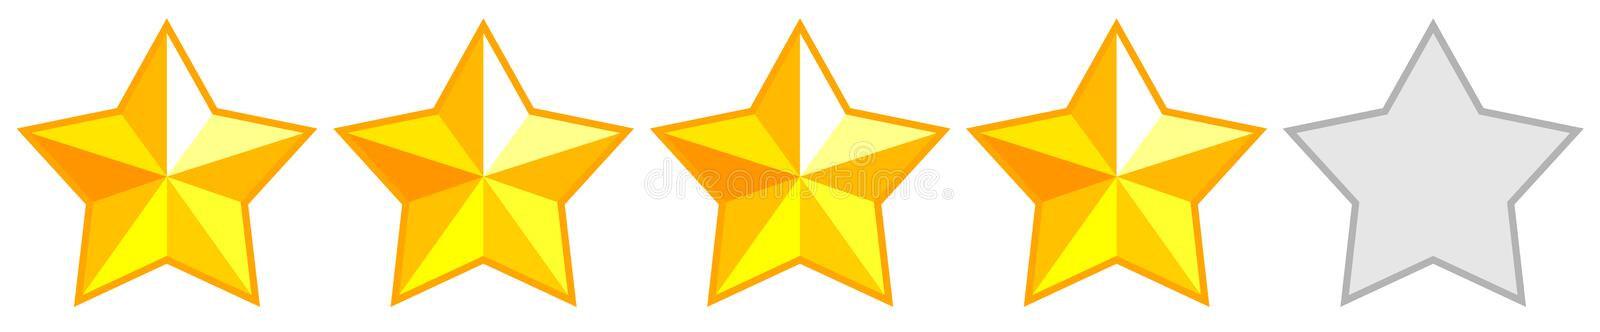 Golden star. Product quality rating. Vector icons. Five star product quality rating. Vector icons royalty free illustration